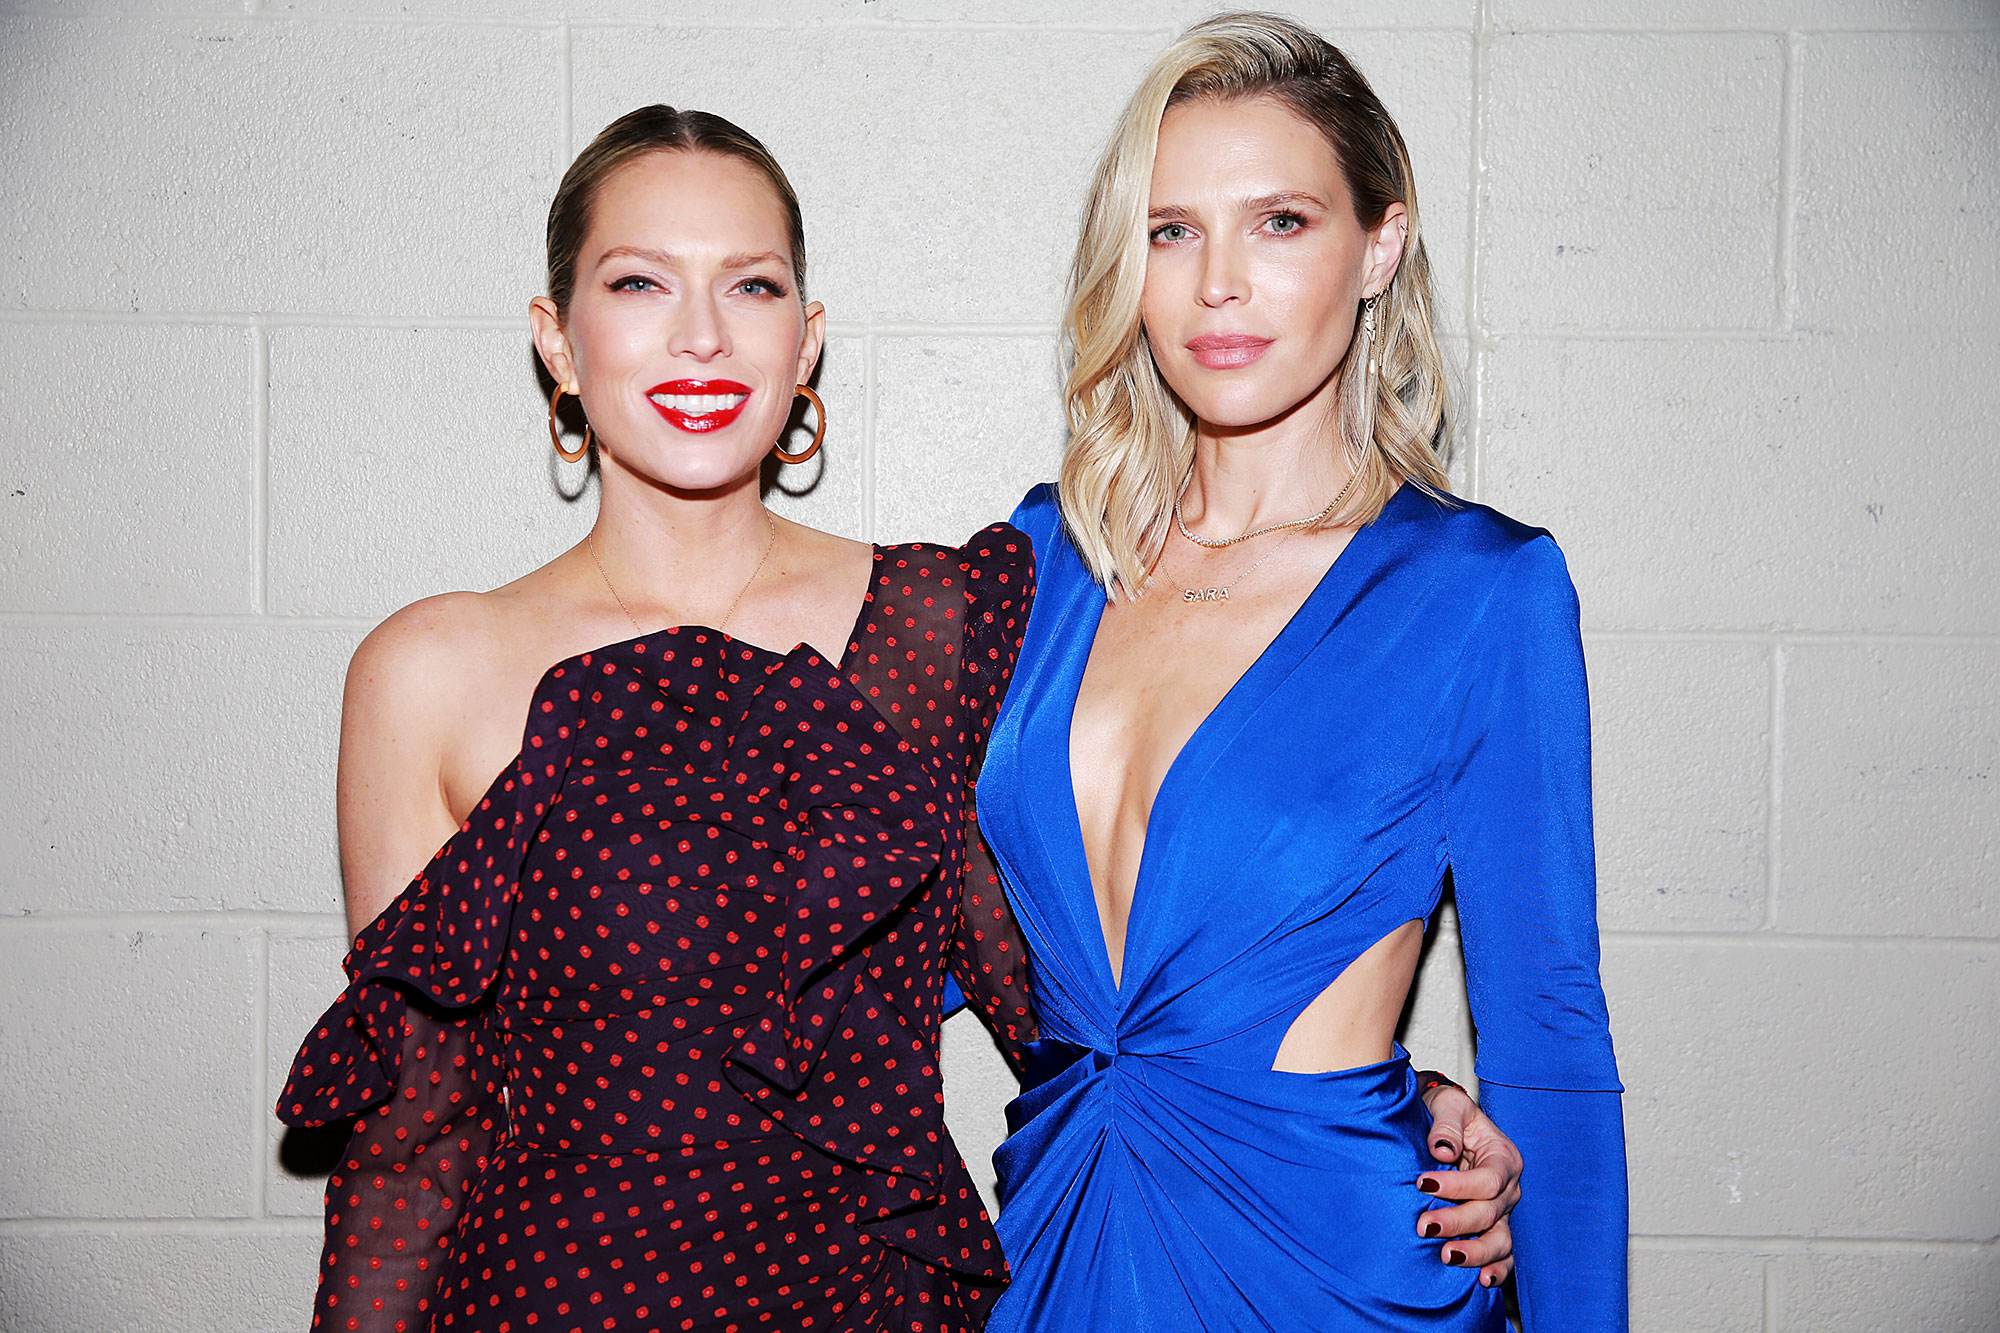 Sara and Erin Foster - Erin Foster (L) and Sara Foster attend the 2018 iHeartRadio Music Festival at T-Mobile Arena on September 21, 2018 in Las Vegas, Nevada.